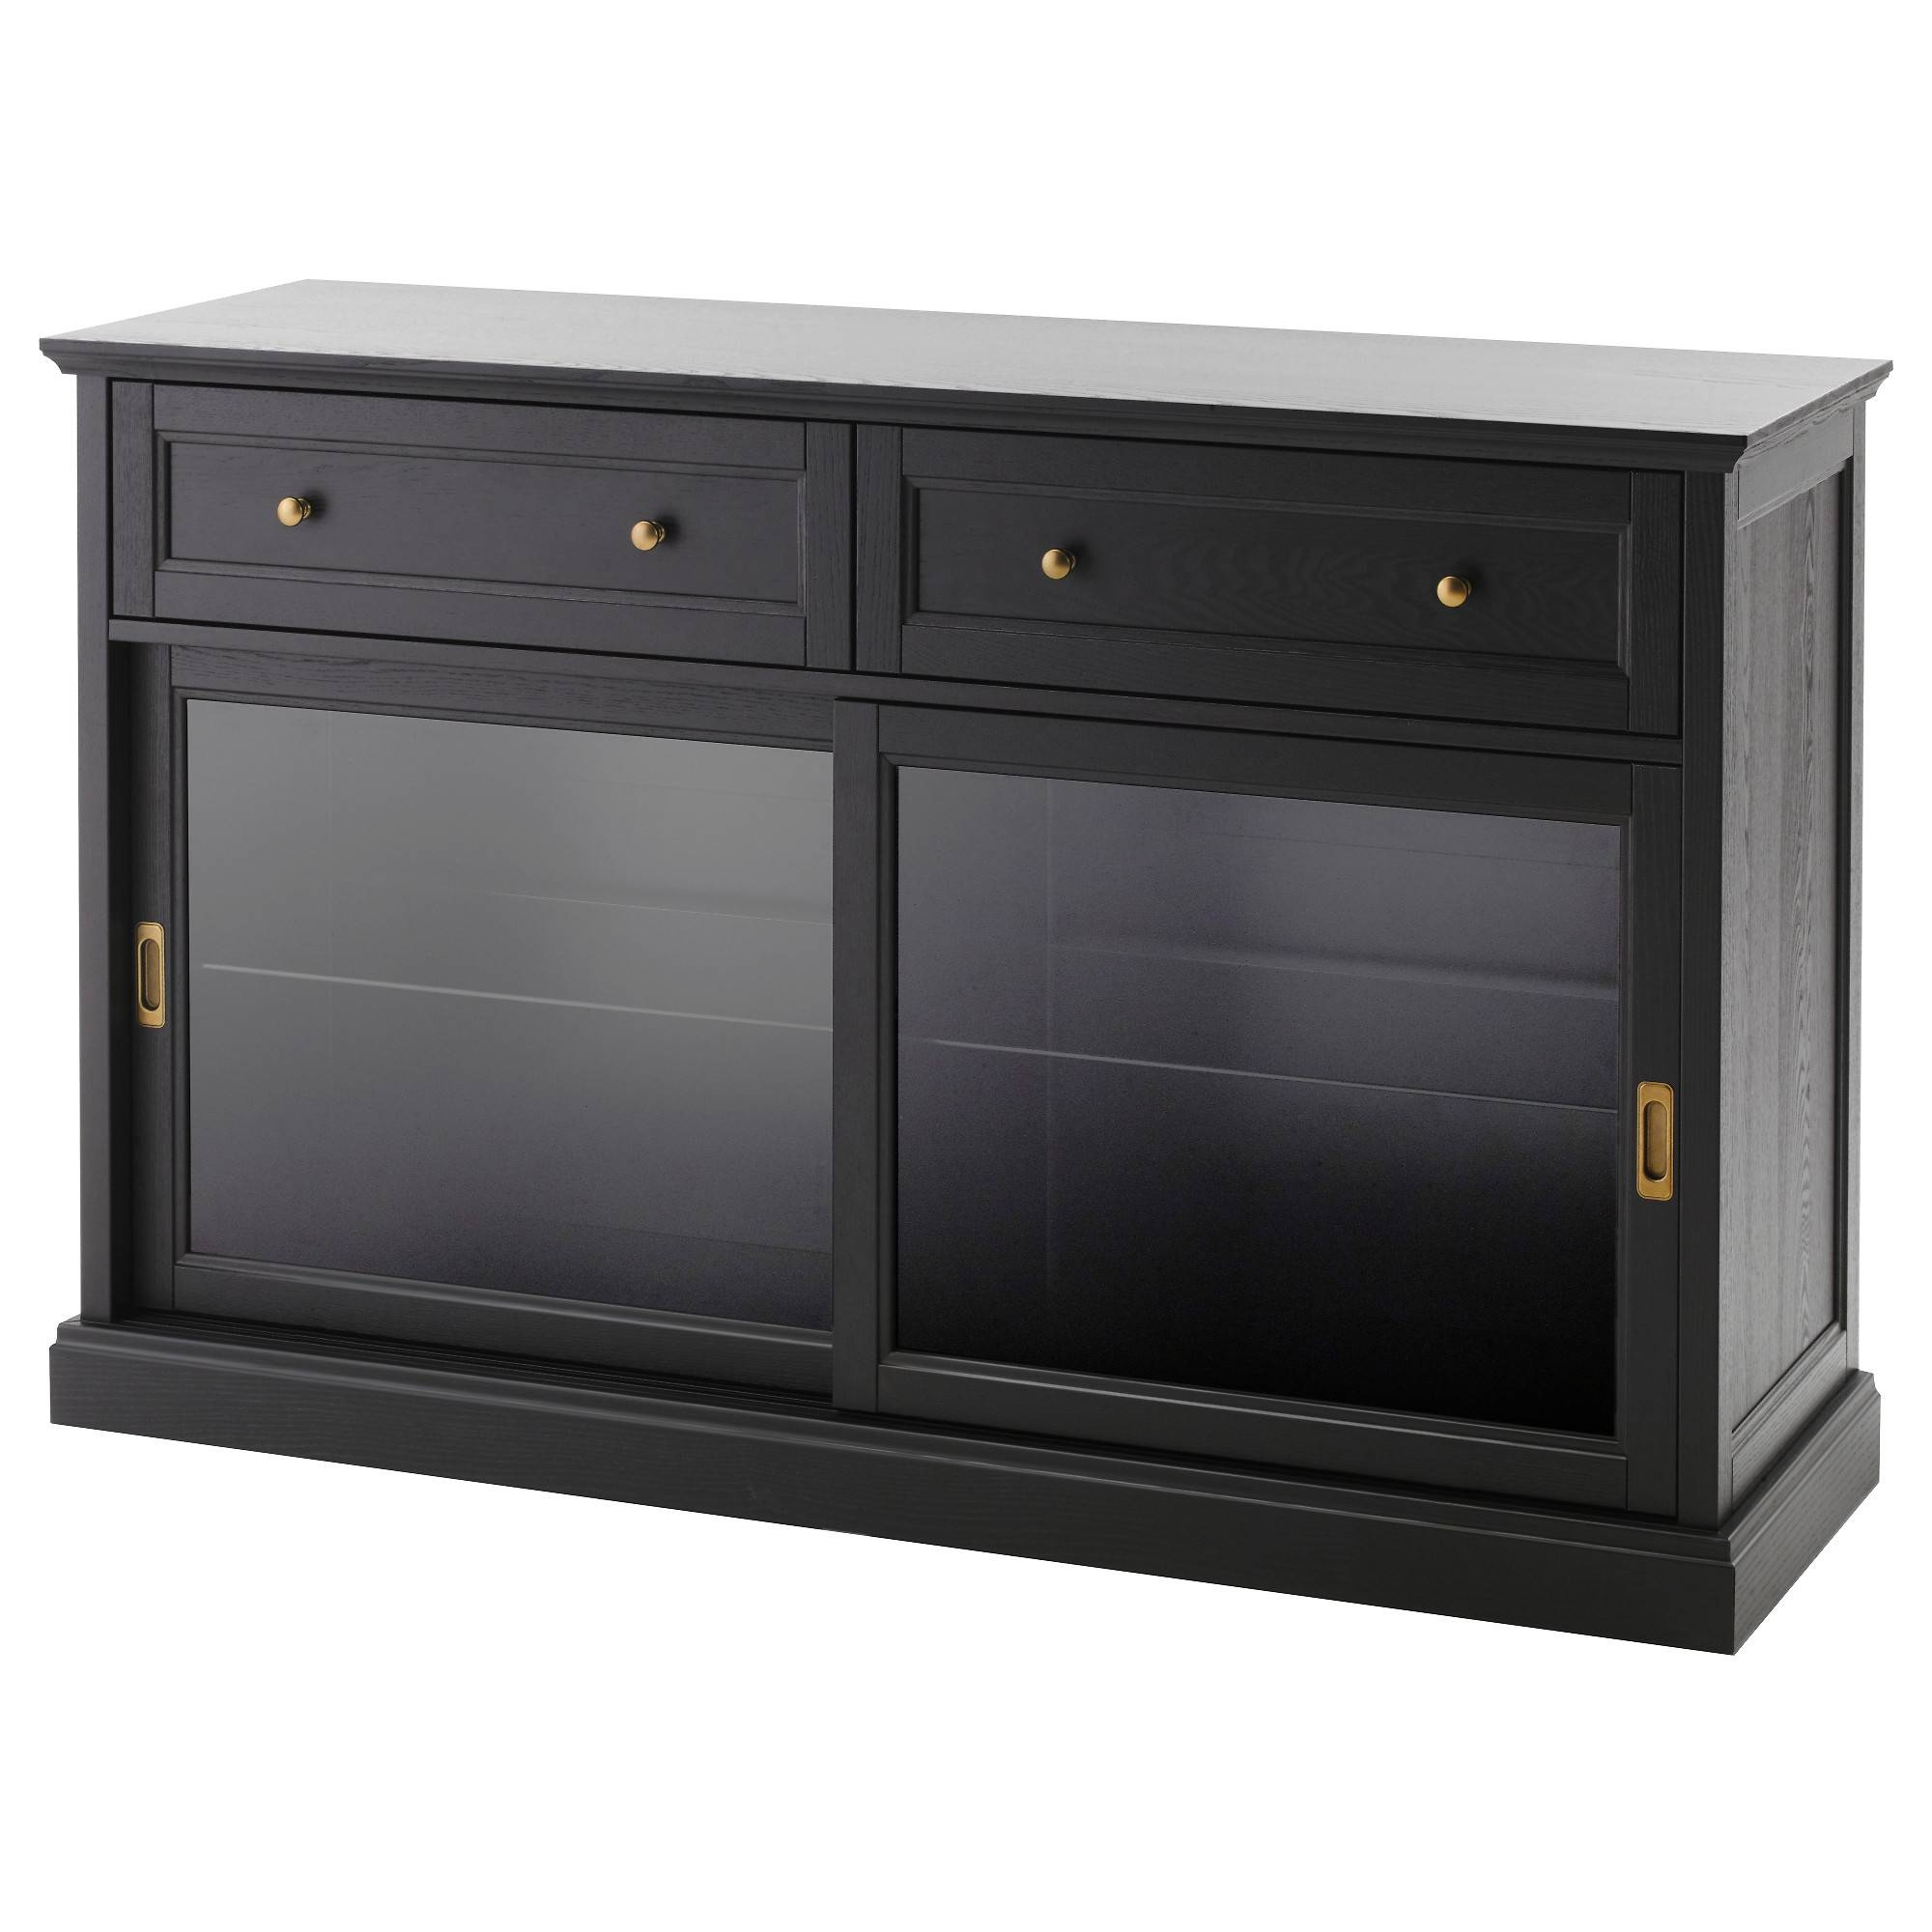 Inspiration about Unique Black Sideboard Buffet – Bjdgjy Within Most Up To Date Unique Sideboards And Buffets (#13 of 15)